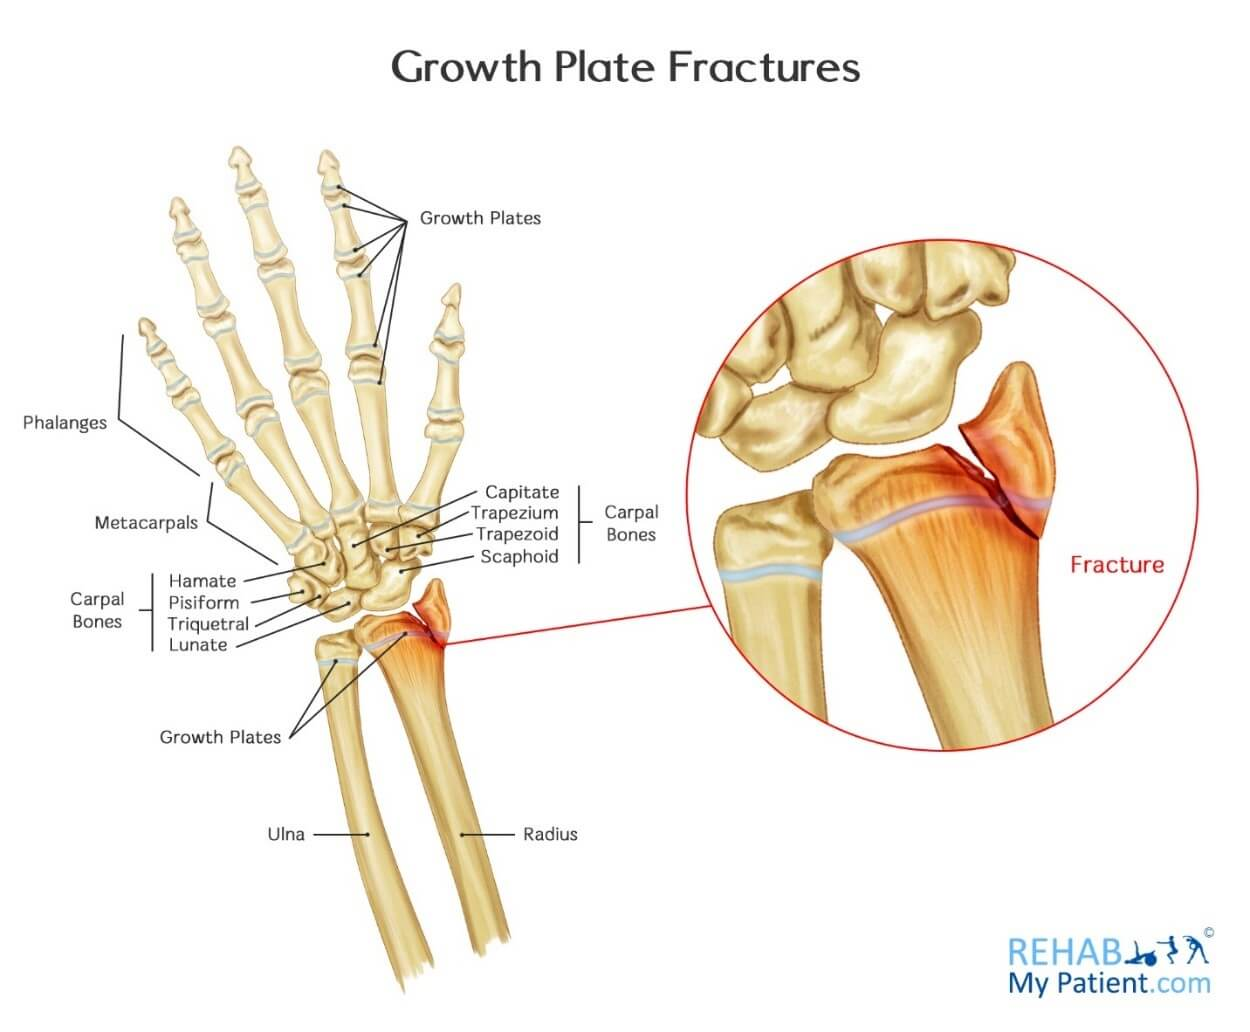 Growth Plate Fracture